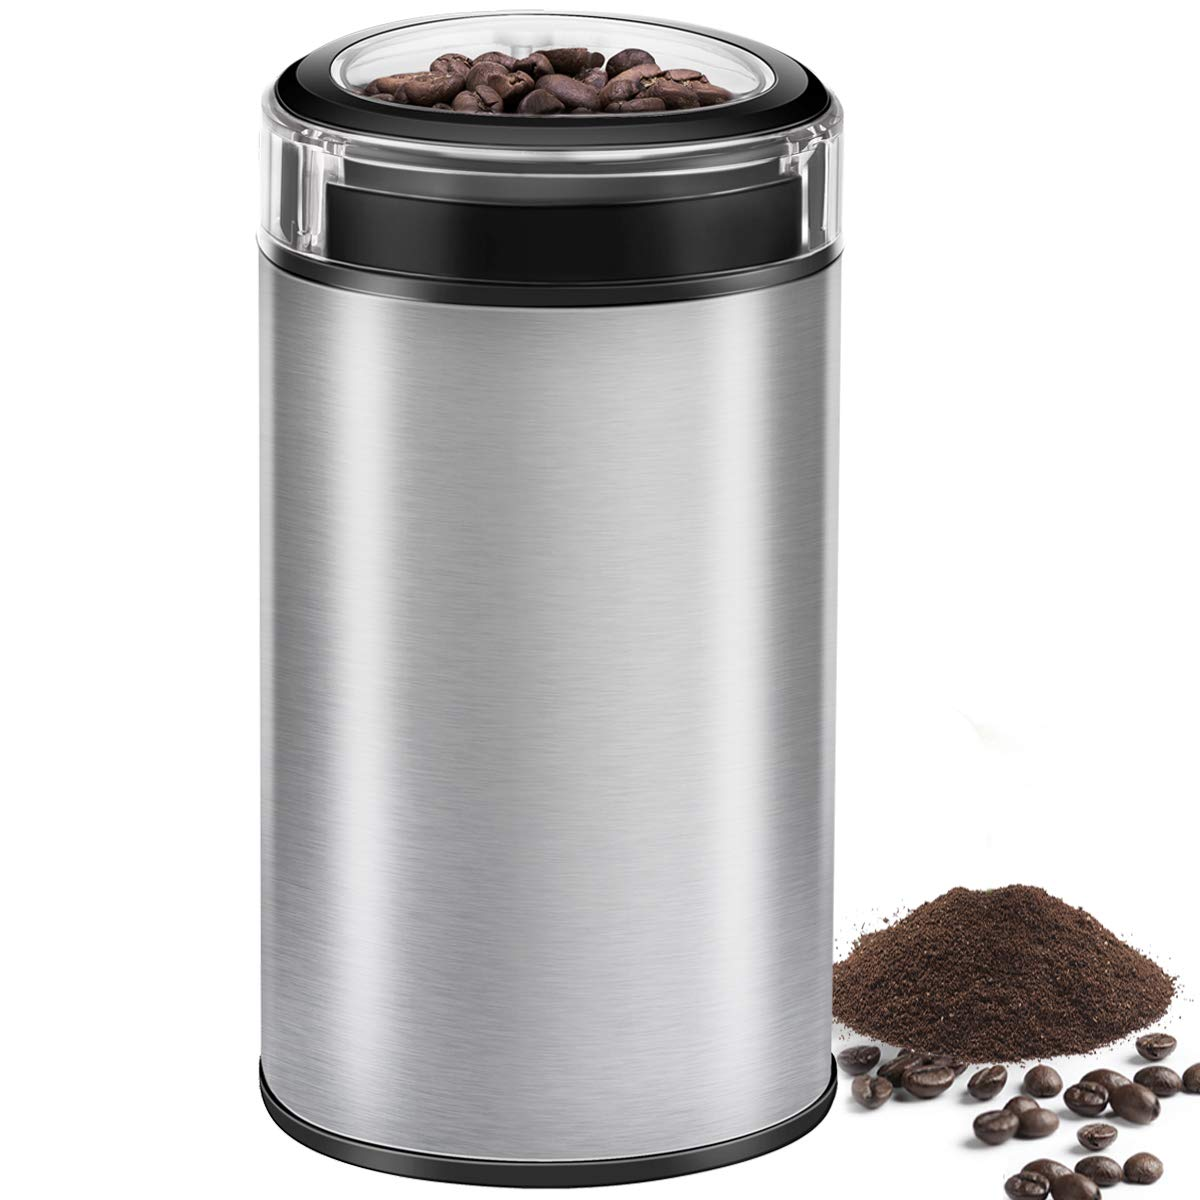 Coffee Grinder Electric Spice Grinder, CUSINAID Stainless Steel Blades Grinder for Coffee Bean Seed Nut Spice Herb Pepper, Transparent Lid with 50g Big Capacity Silver by CUSINAID